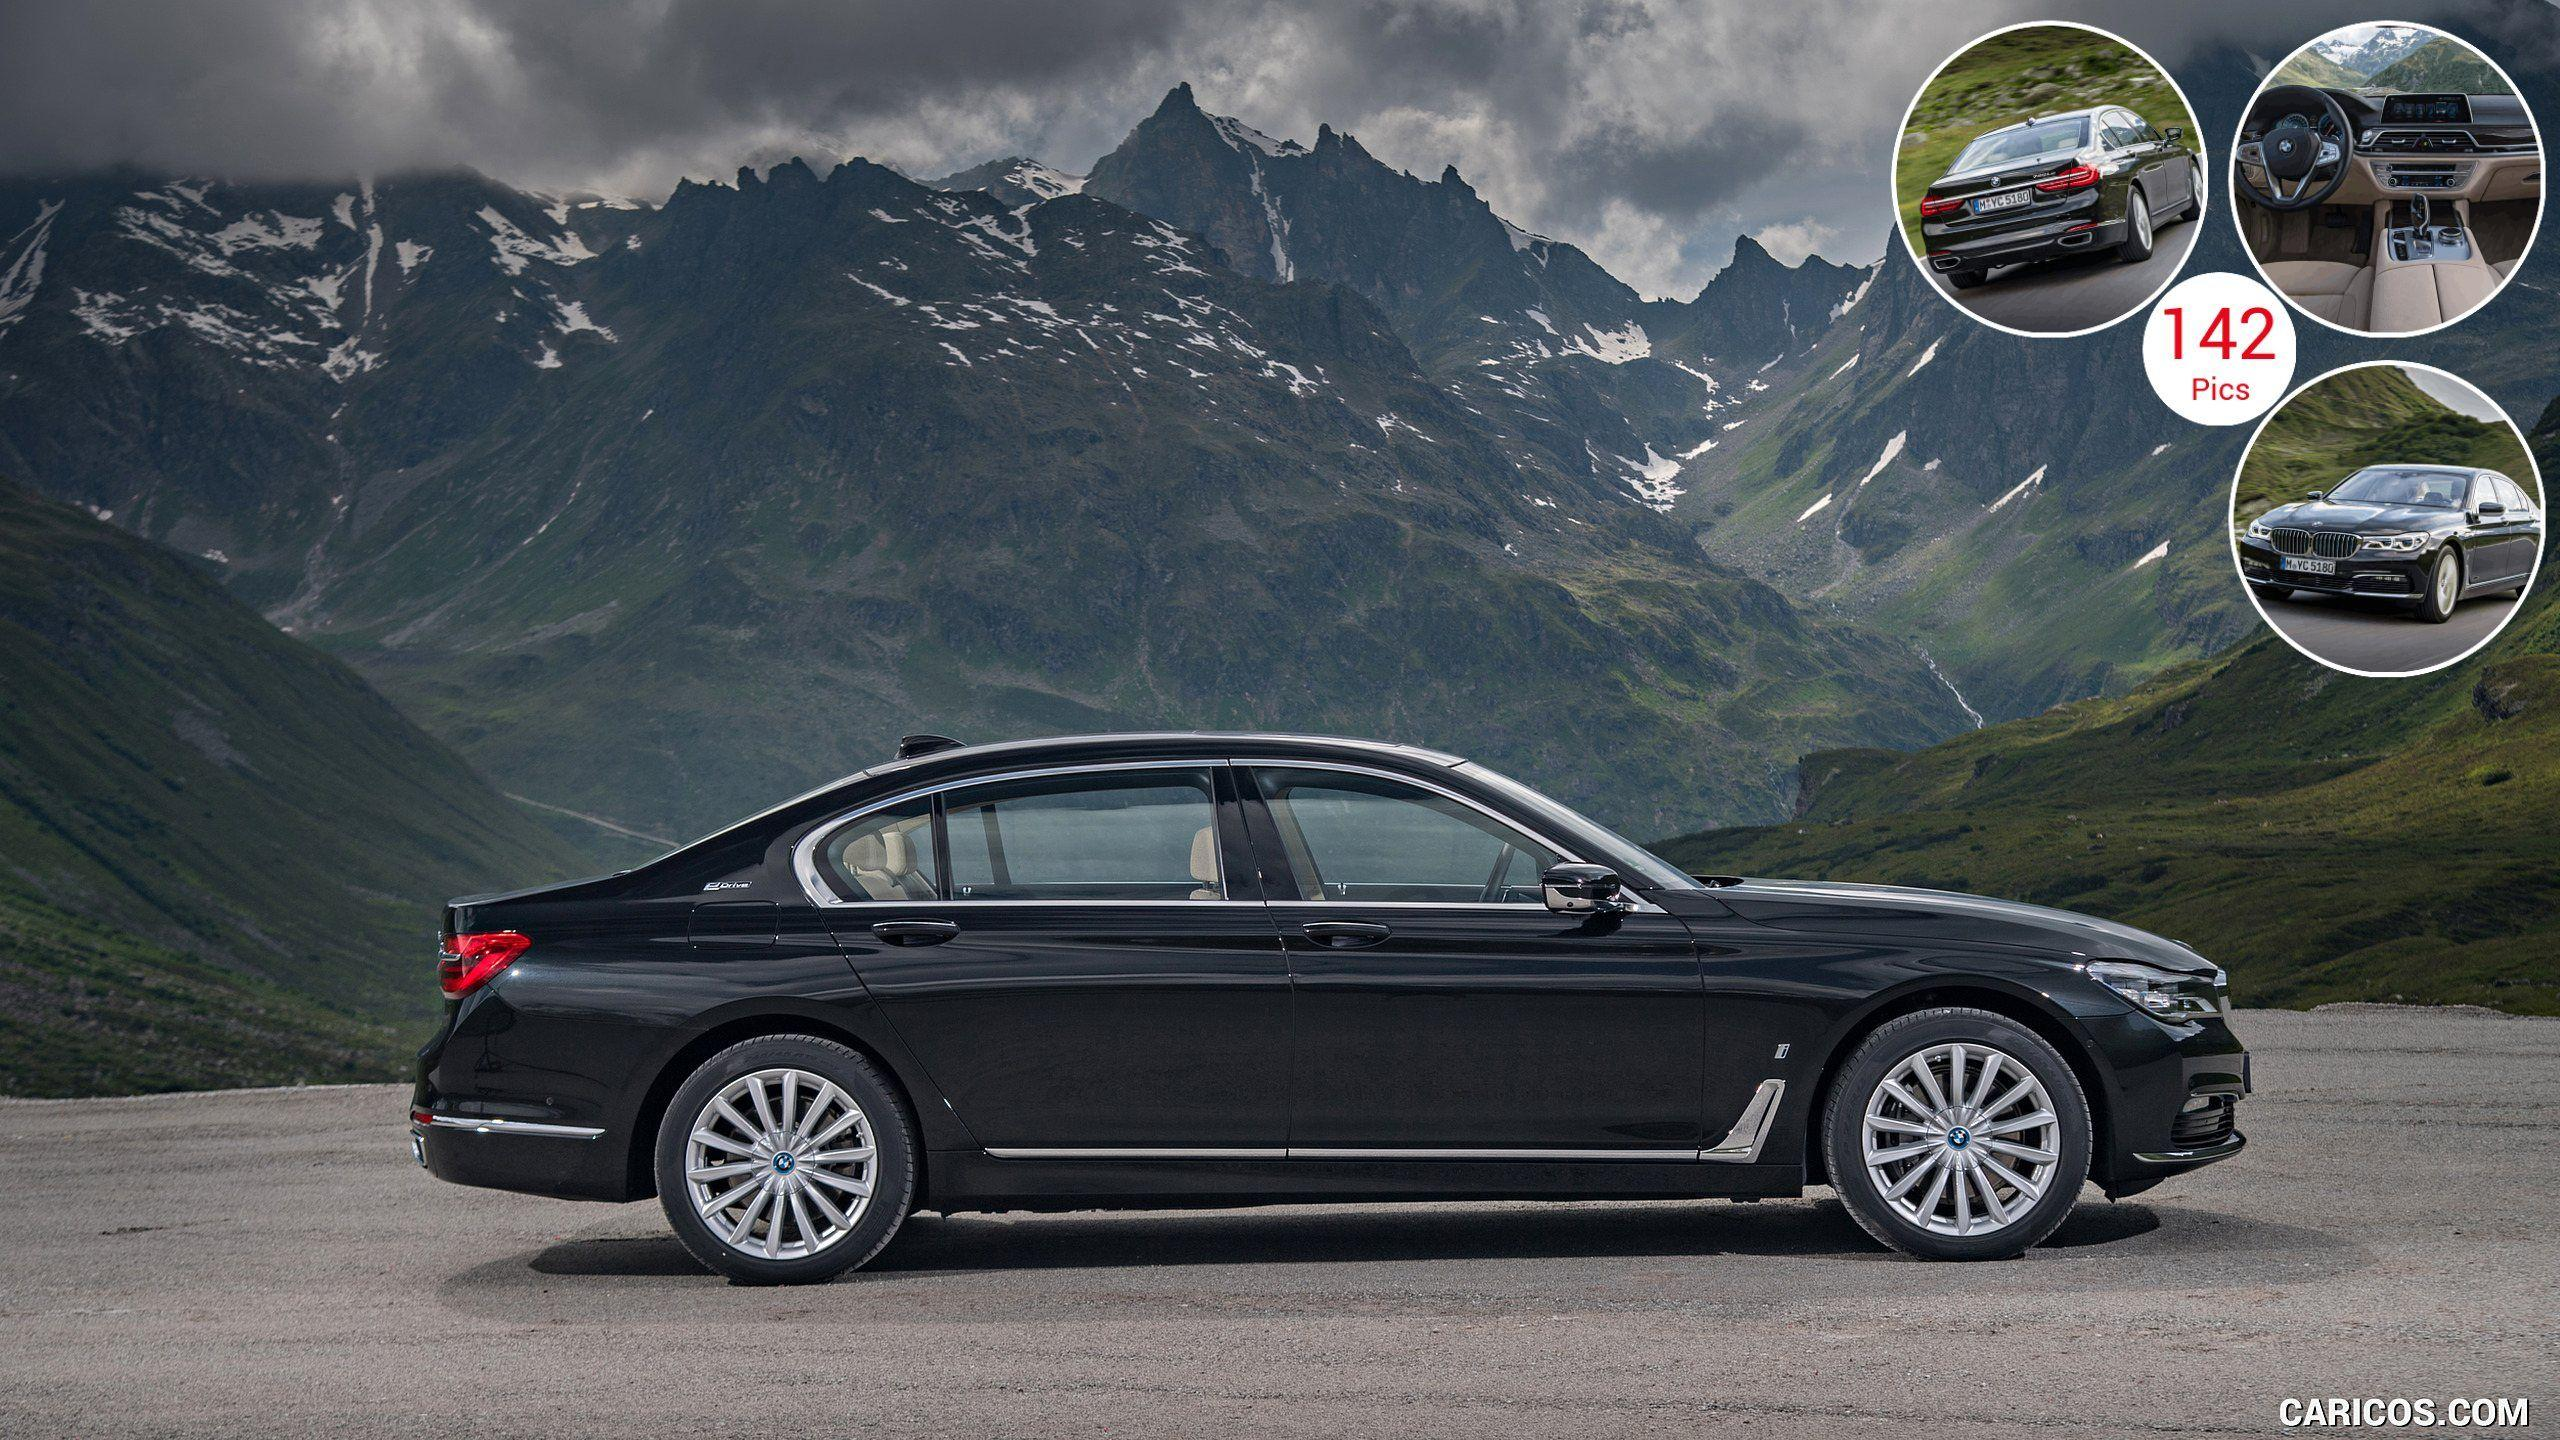 Bmw 7 Series Wallpapers Wallpaper Cave